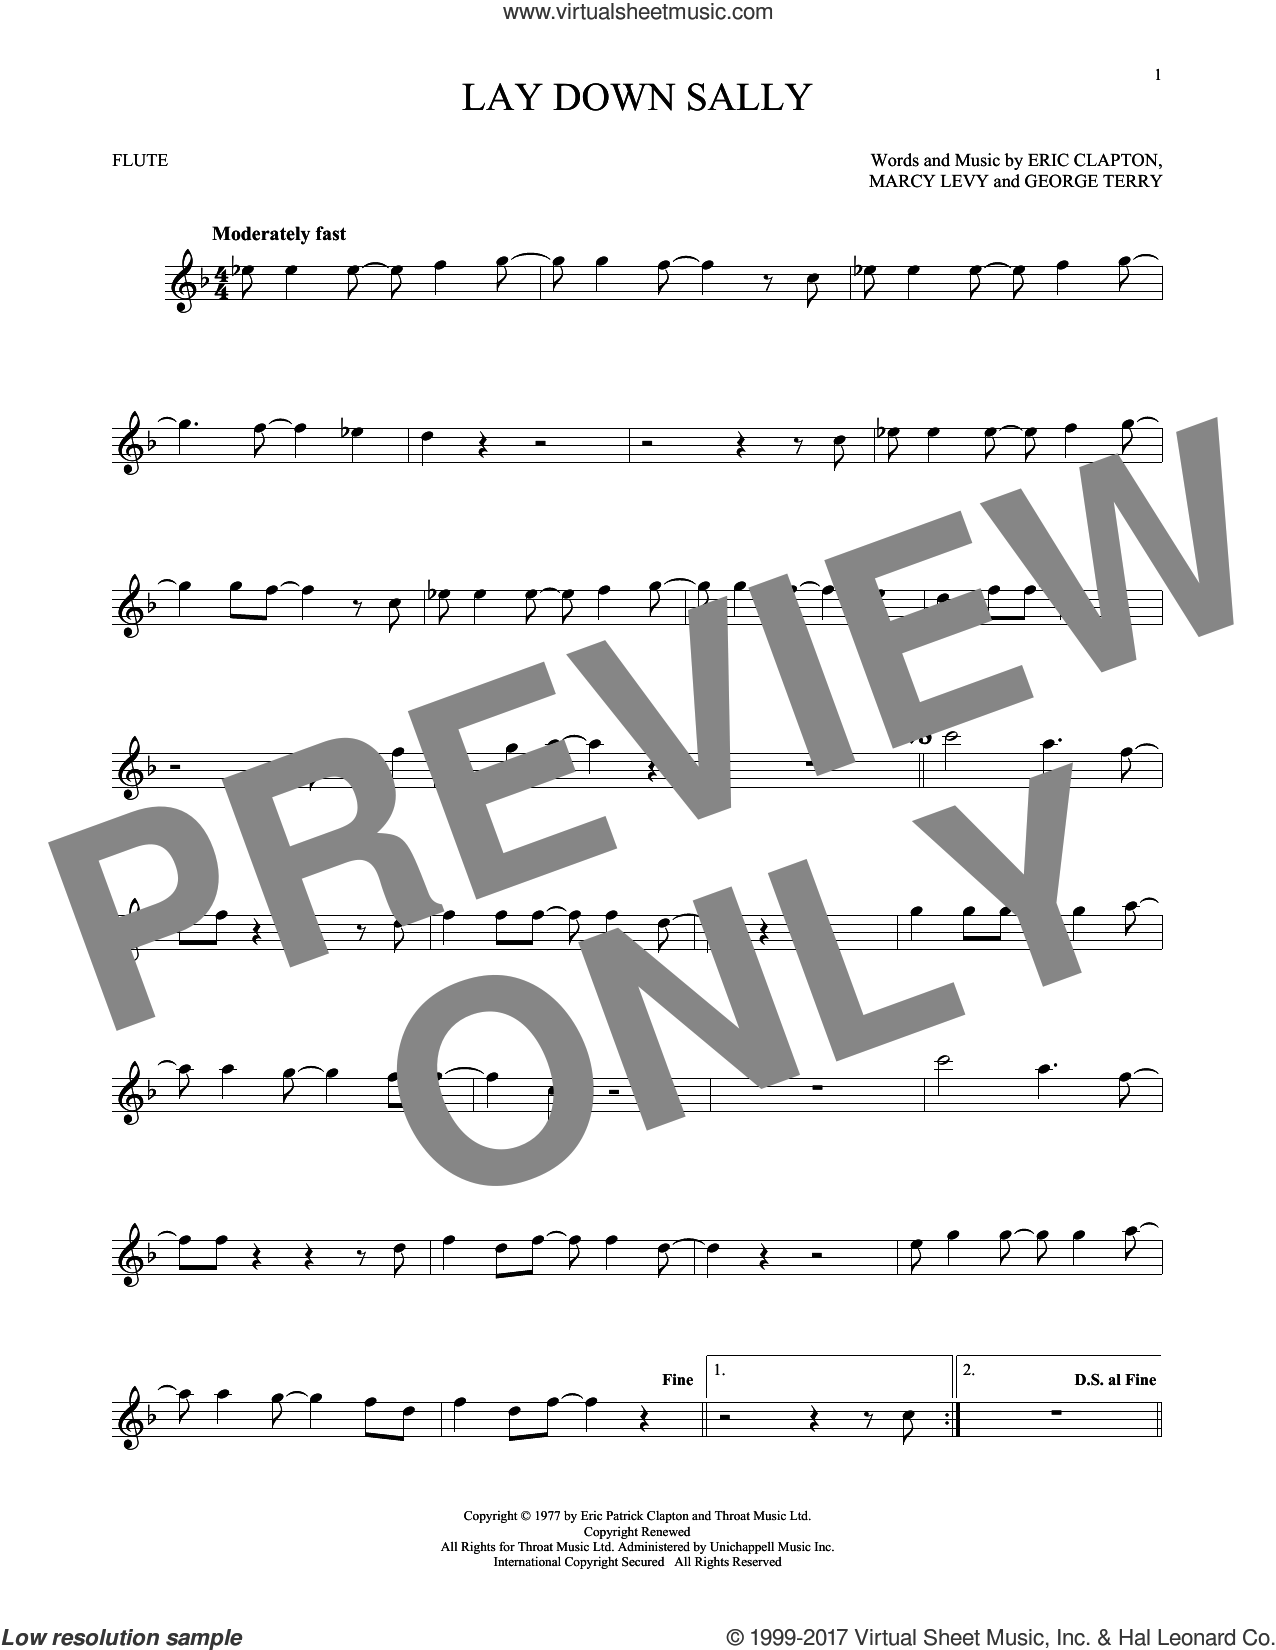 Lay Down Sally sheet music for flute solo by Eric Clapton, George Terry and Marcy Levy, intermediate skill level